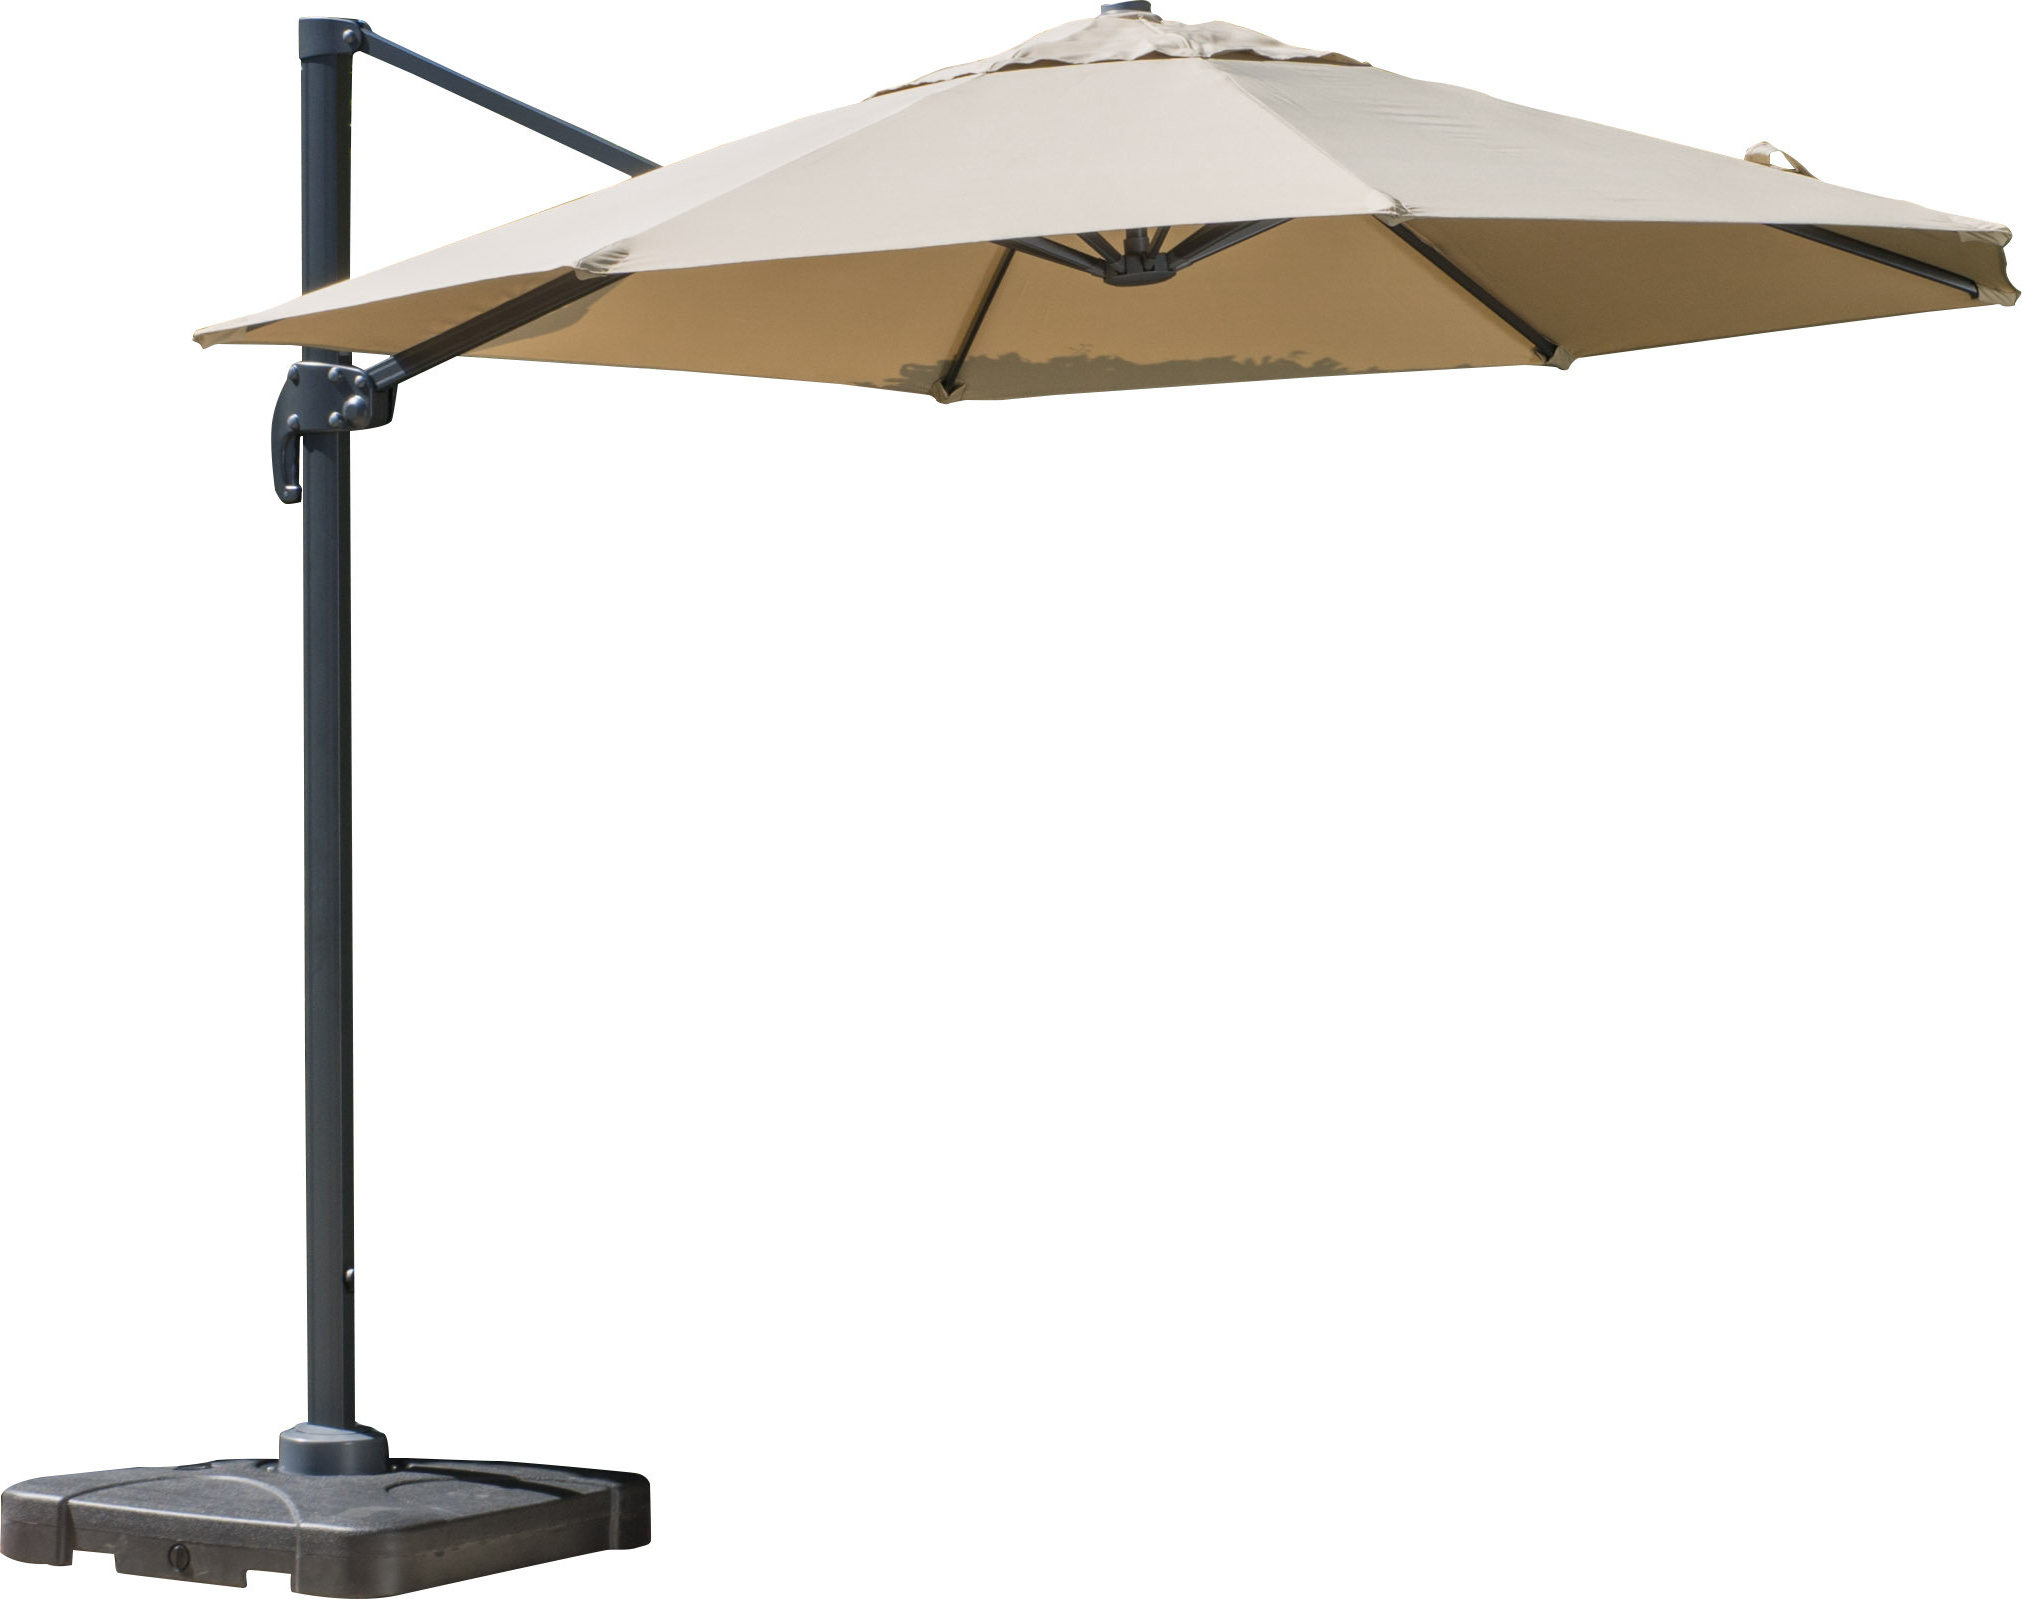 Bellana Cantilever Umbrella With 2020 Freda Cantilever Umbrellas (View 7 of 20)